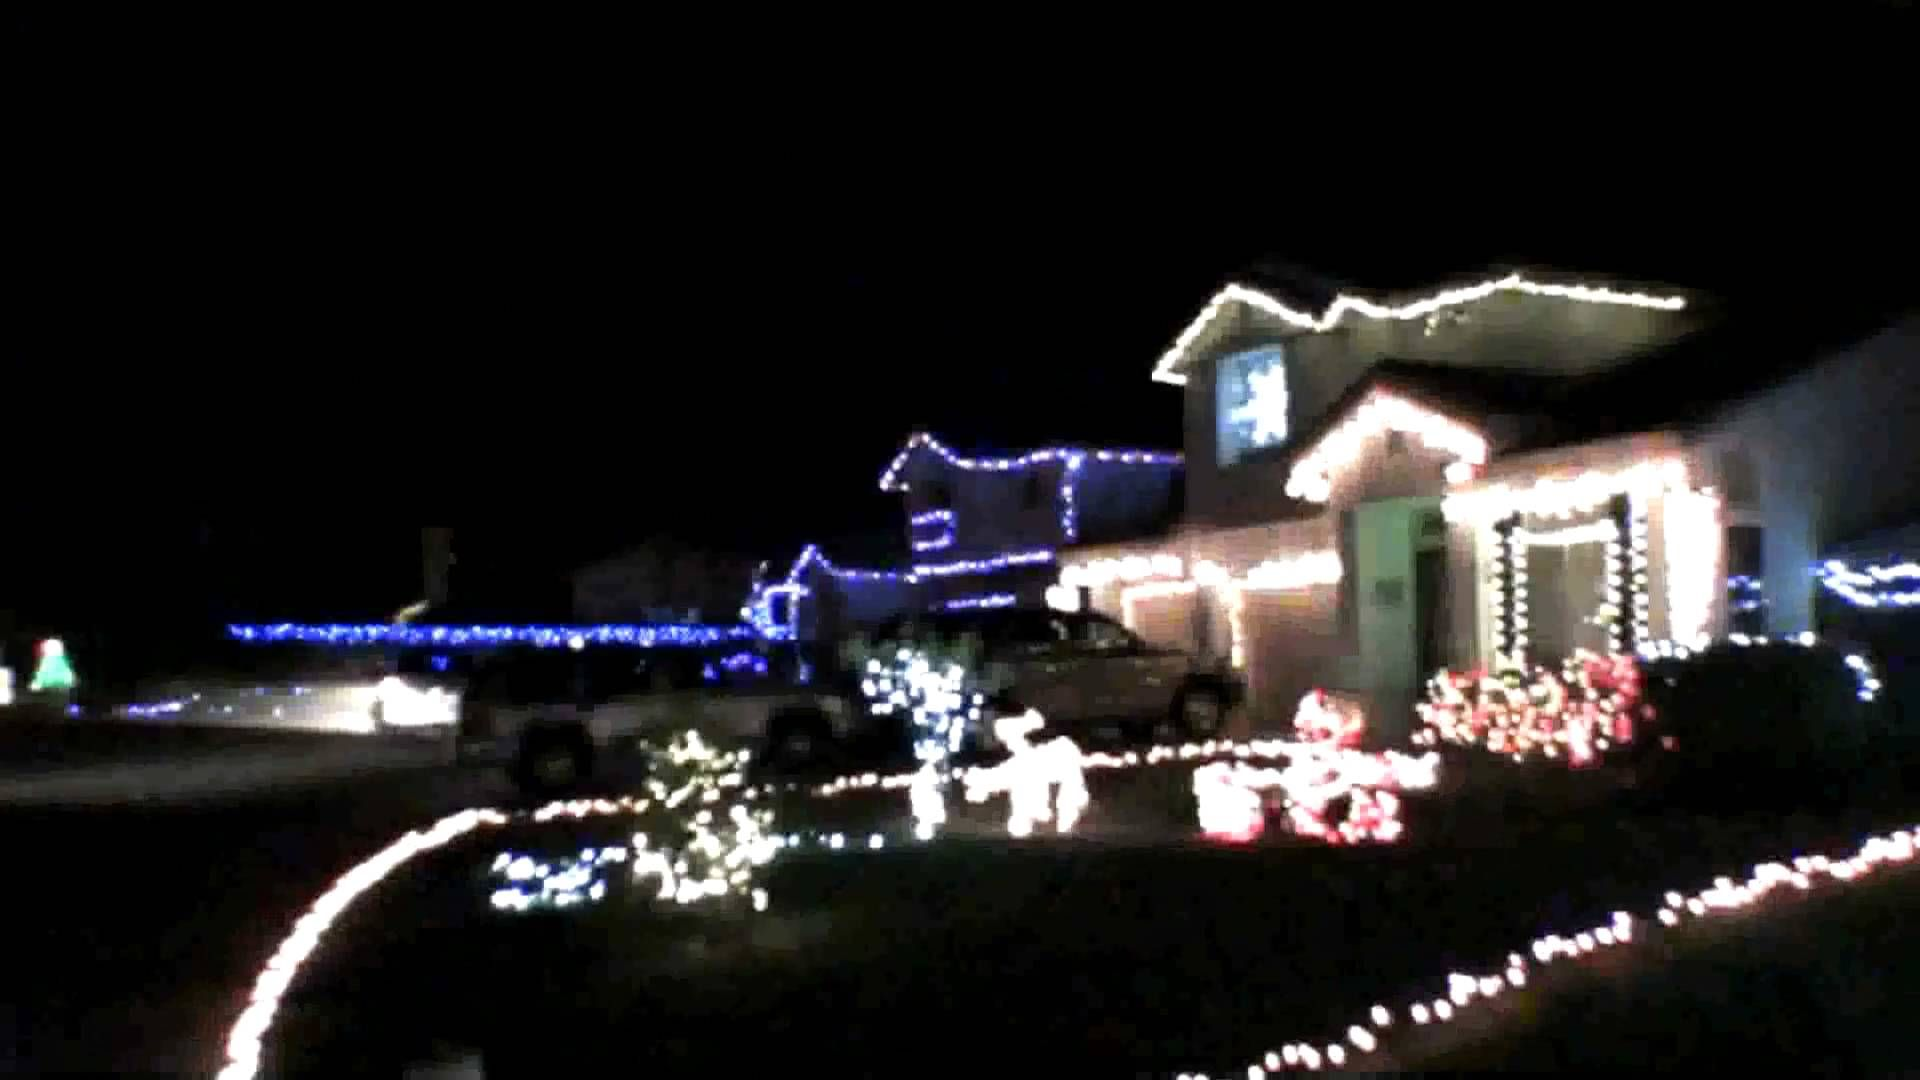 Christmas Lights 13 Houses Set To Little Drummer Boy TIME 3:44